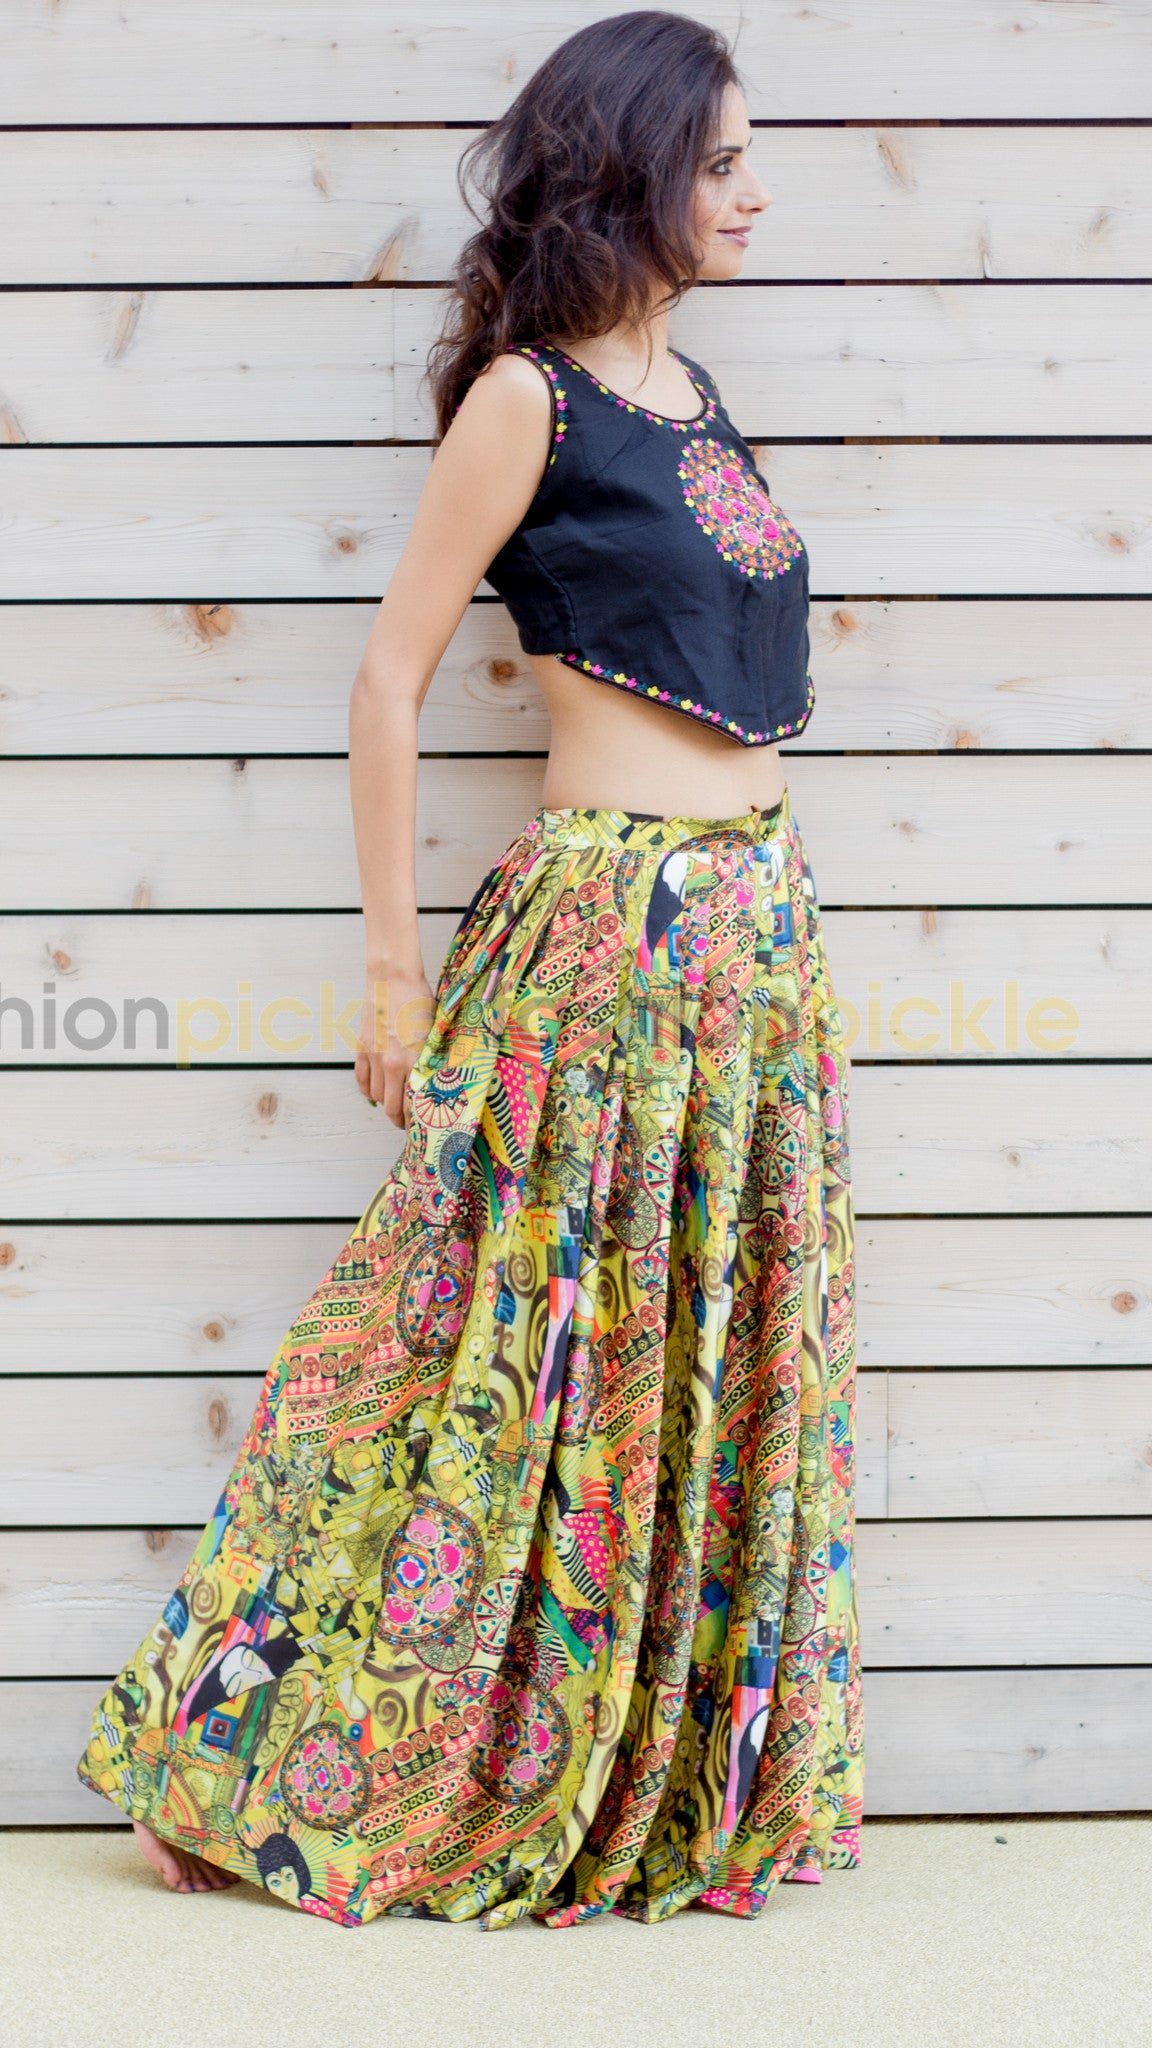 Image result for umbrella skirt with crop top